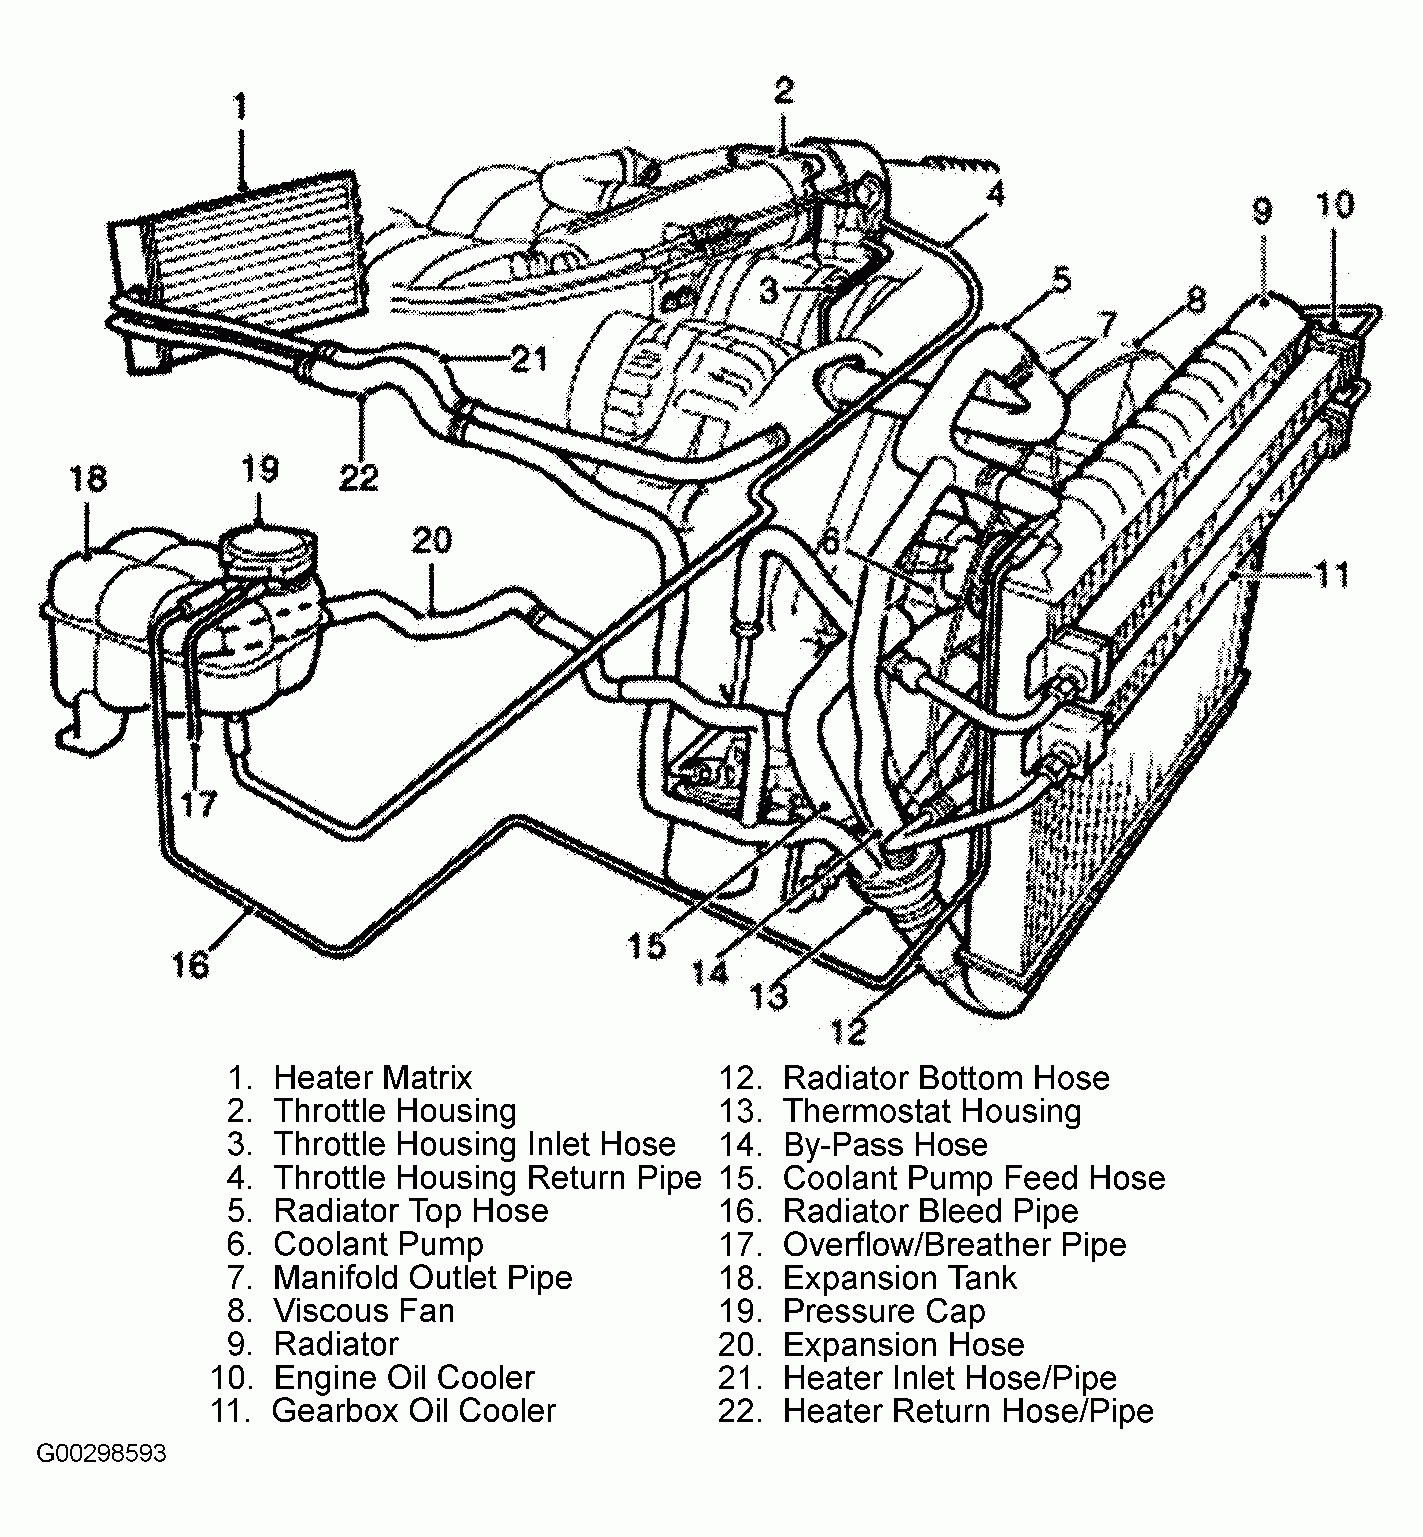 2003 Lincoln Ls V8 Engine Diagram V8 Chevy Engine Diagram 05 Trusted Wiring Diagrams • Of 2003 Lincoln Ls V8 Engine Diagram Fan Clutch 2002 Lincoln Ls Parts Diagram Wiring Diagram Services •